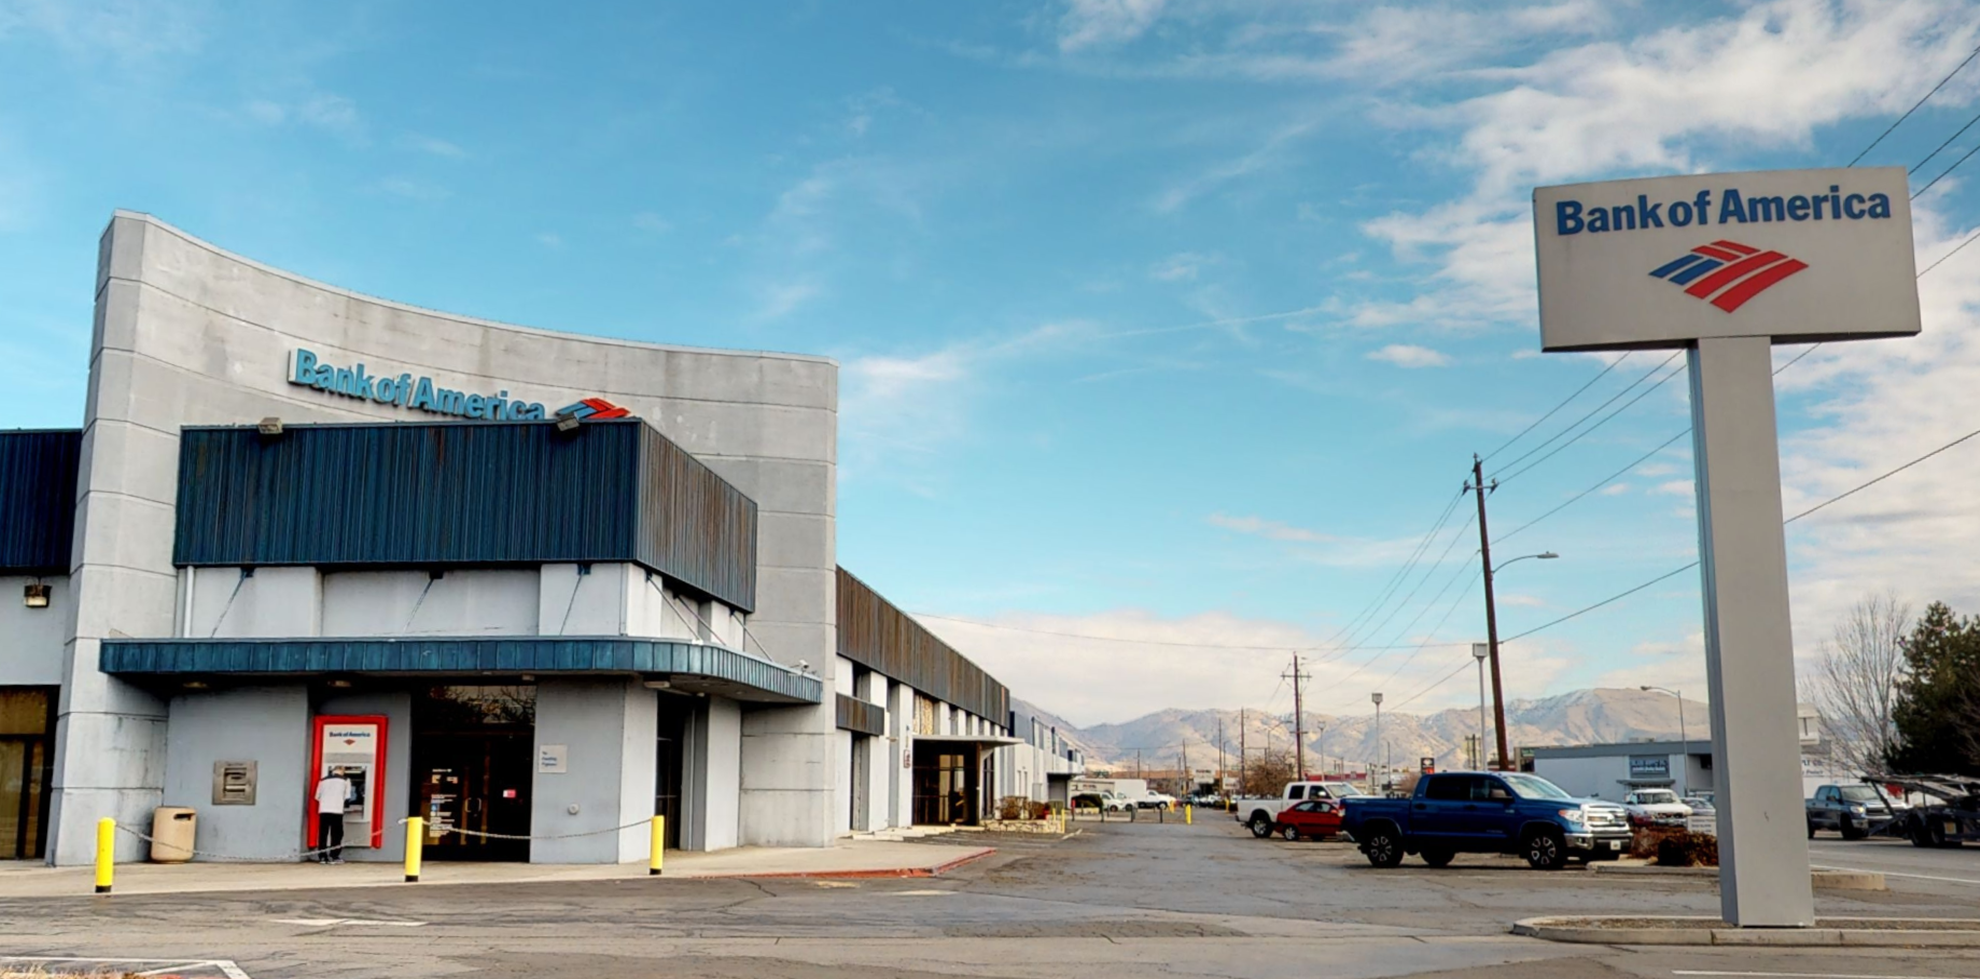 Bank of America financial center with drive-thru ATM | 2597 Mill St, Reno, NV 89502